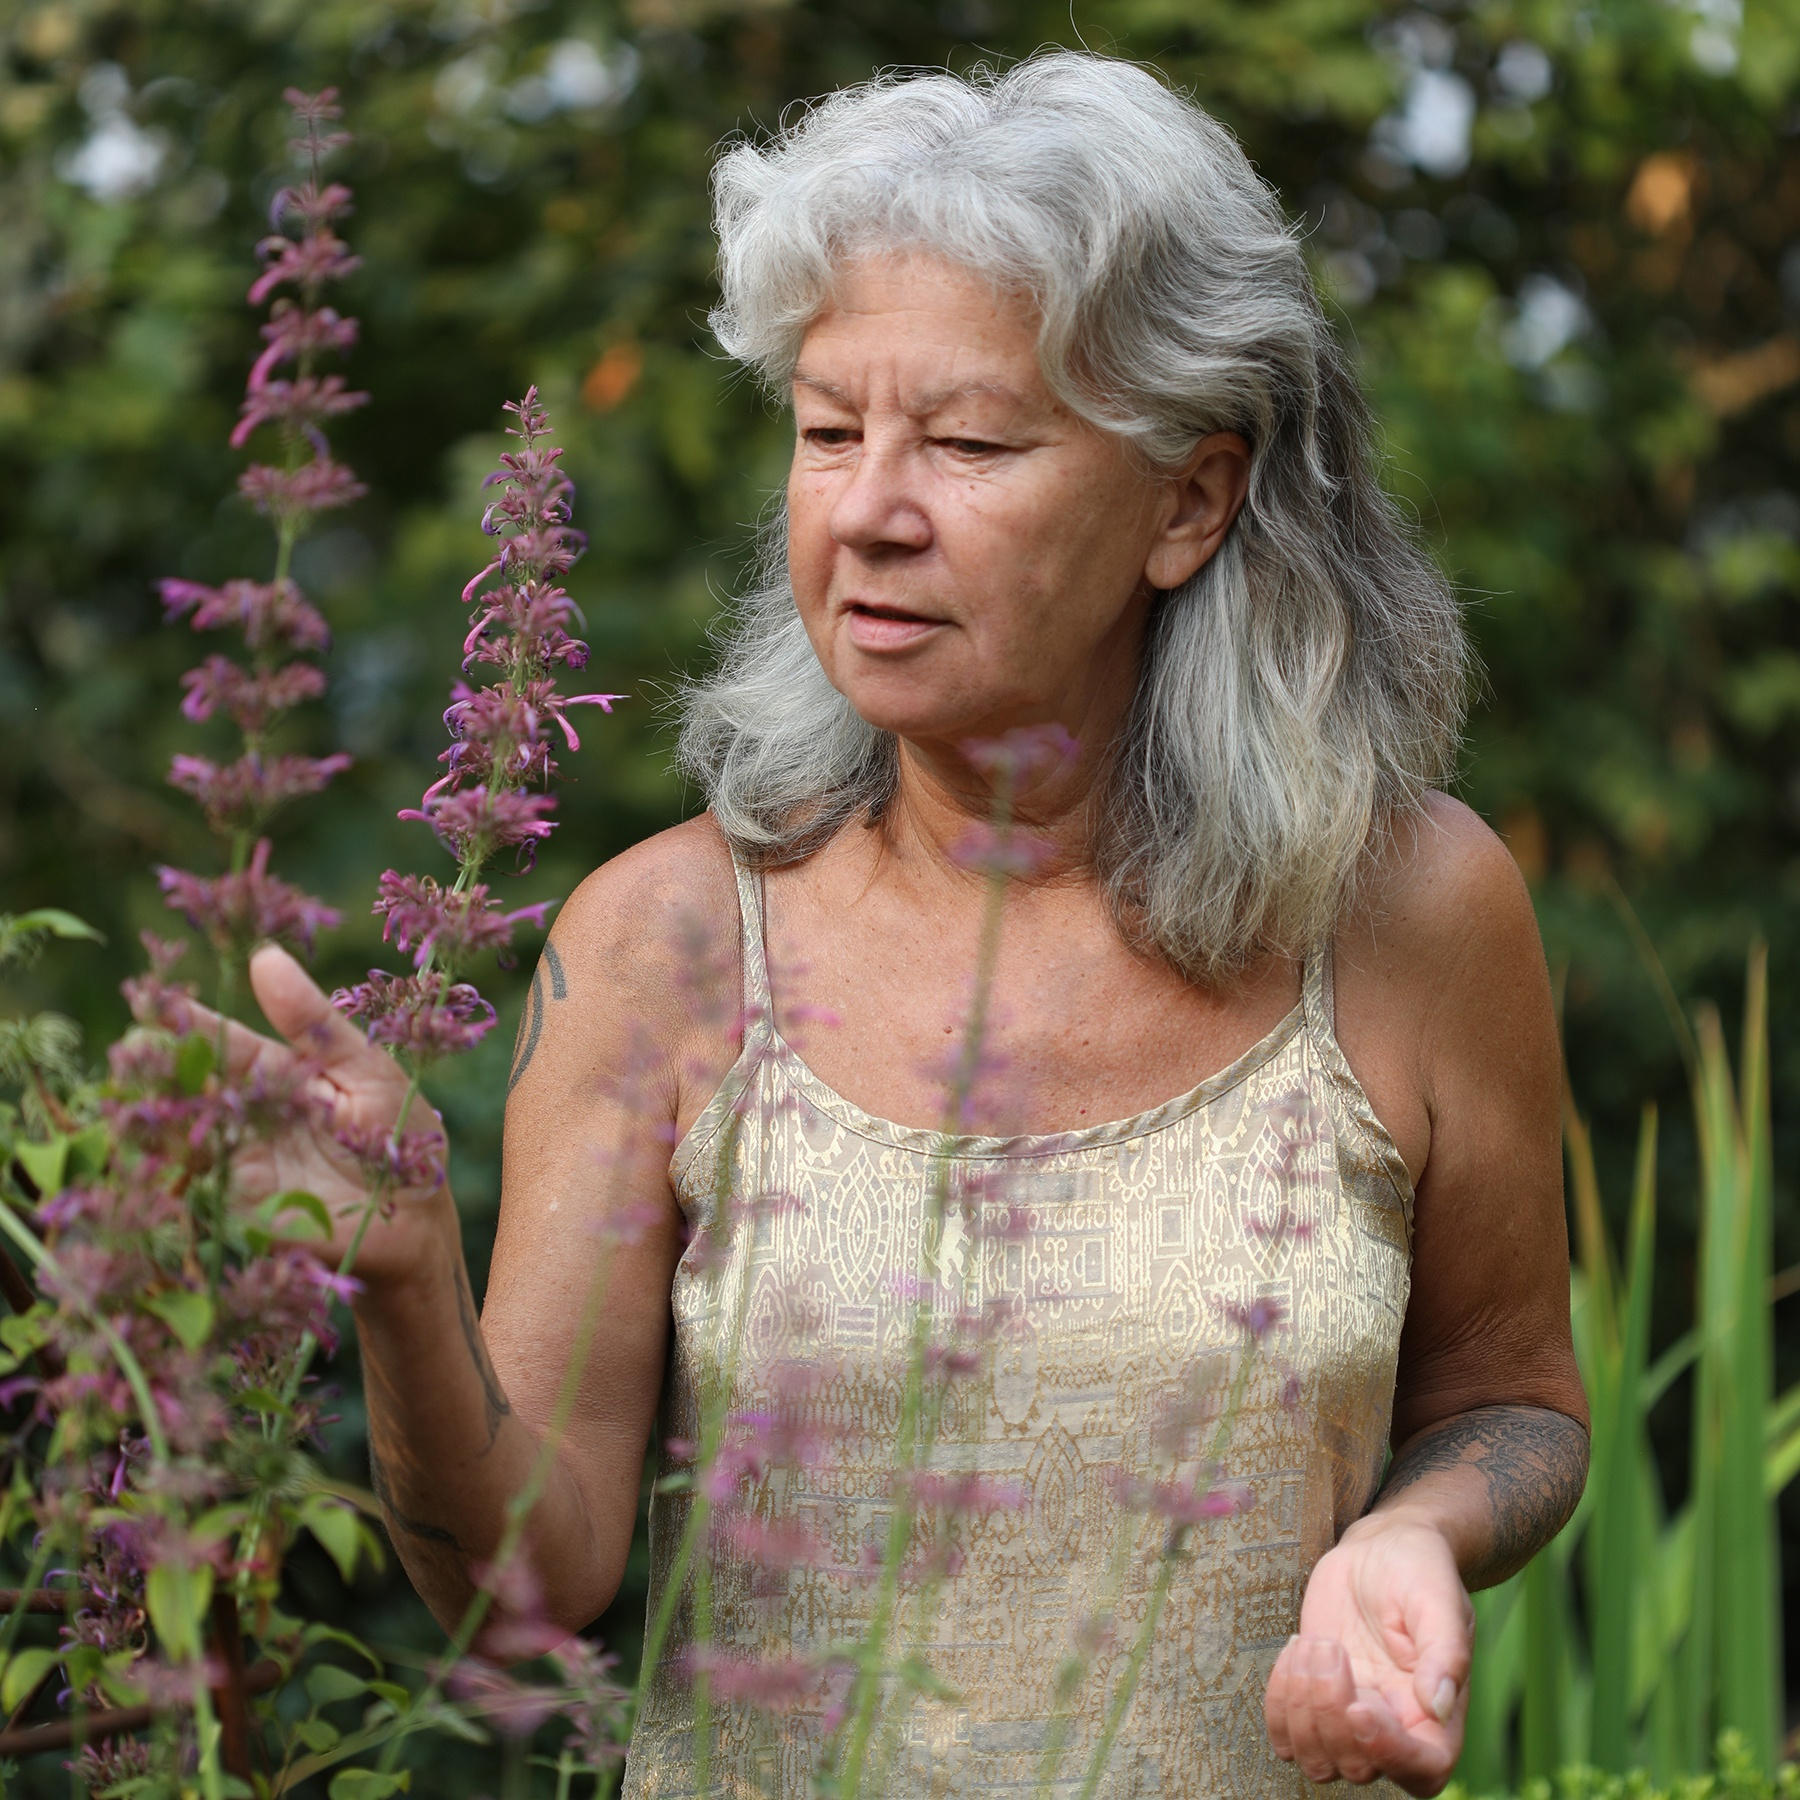 Mountain Rose Herbs co owner, Julie Bailey, standing in garden with hands touching fresh herbs